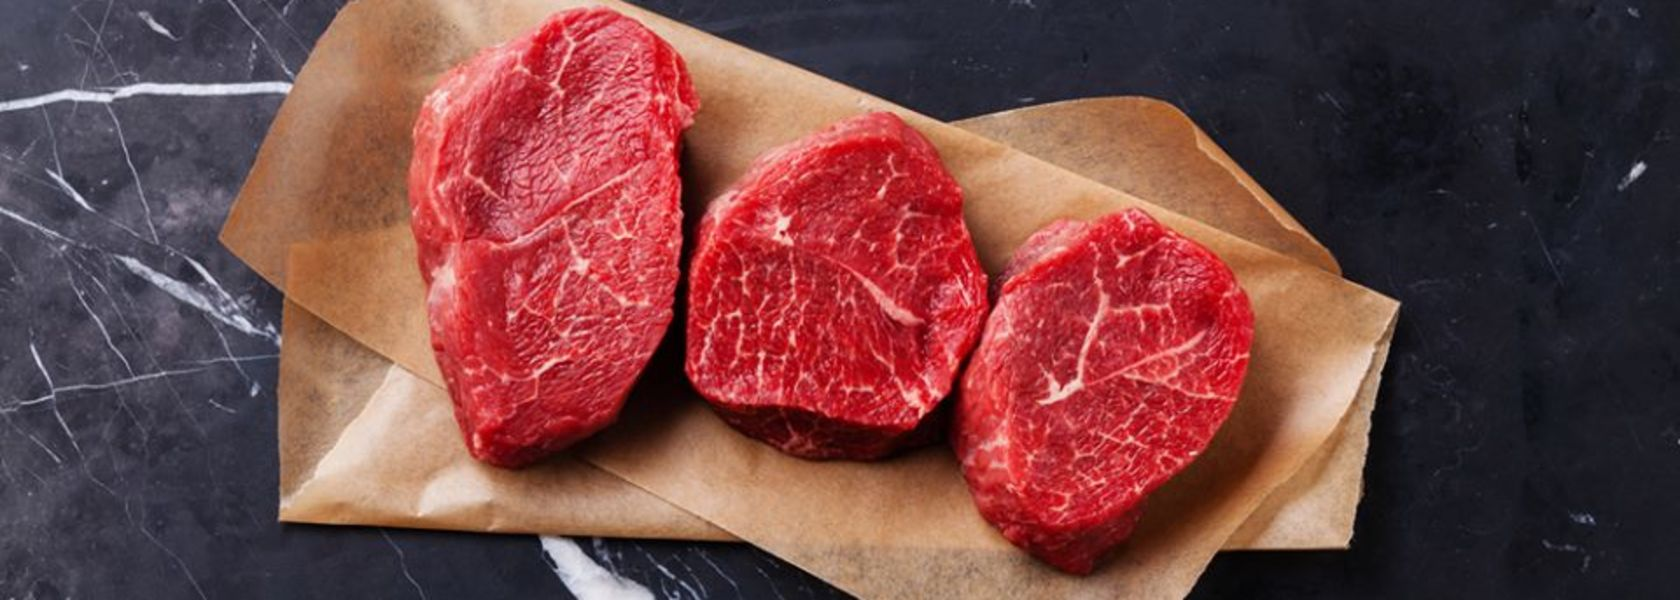 Meat industry up in arms over energy policies